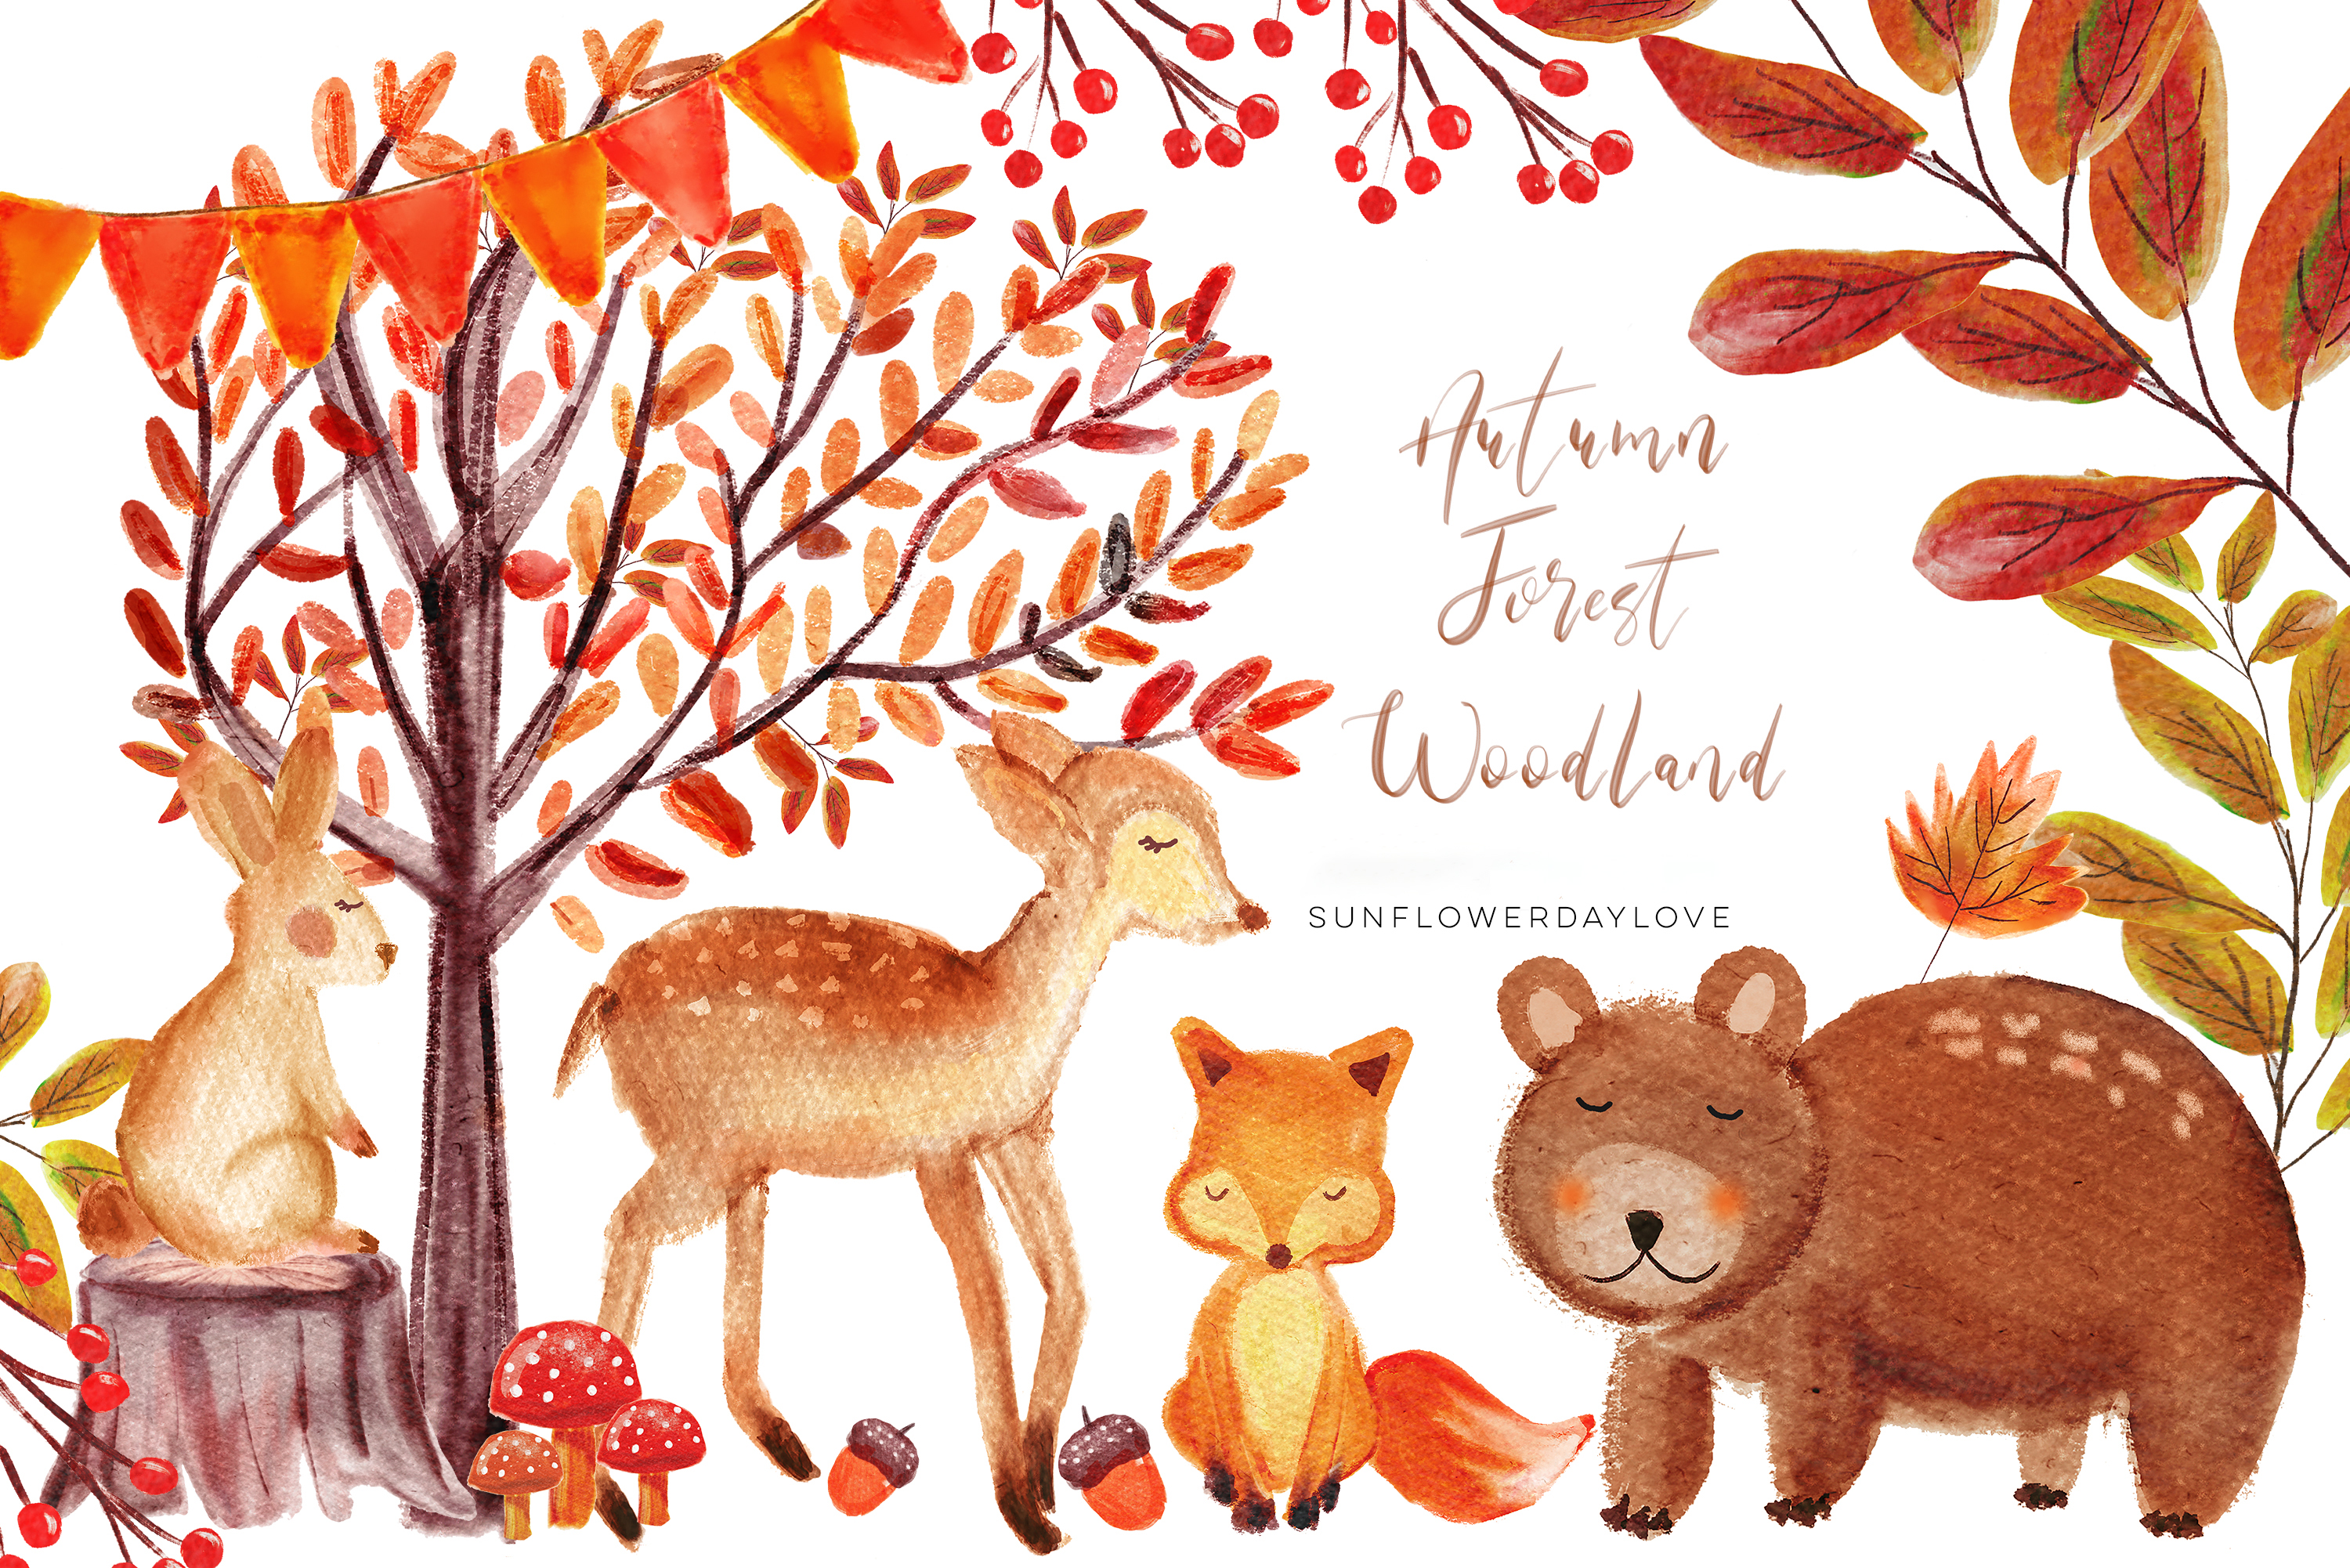 Watercolor woodland animals clipart clip art free Autumn Forest Woodland clipart, Watercolor Bear deer Clipart, Autumn  Clipart, Woodland Animals Clipart, Cute Nursery Clipart, Fall Clip Art -  Vsual clip art free